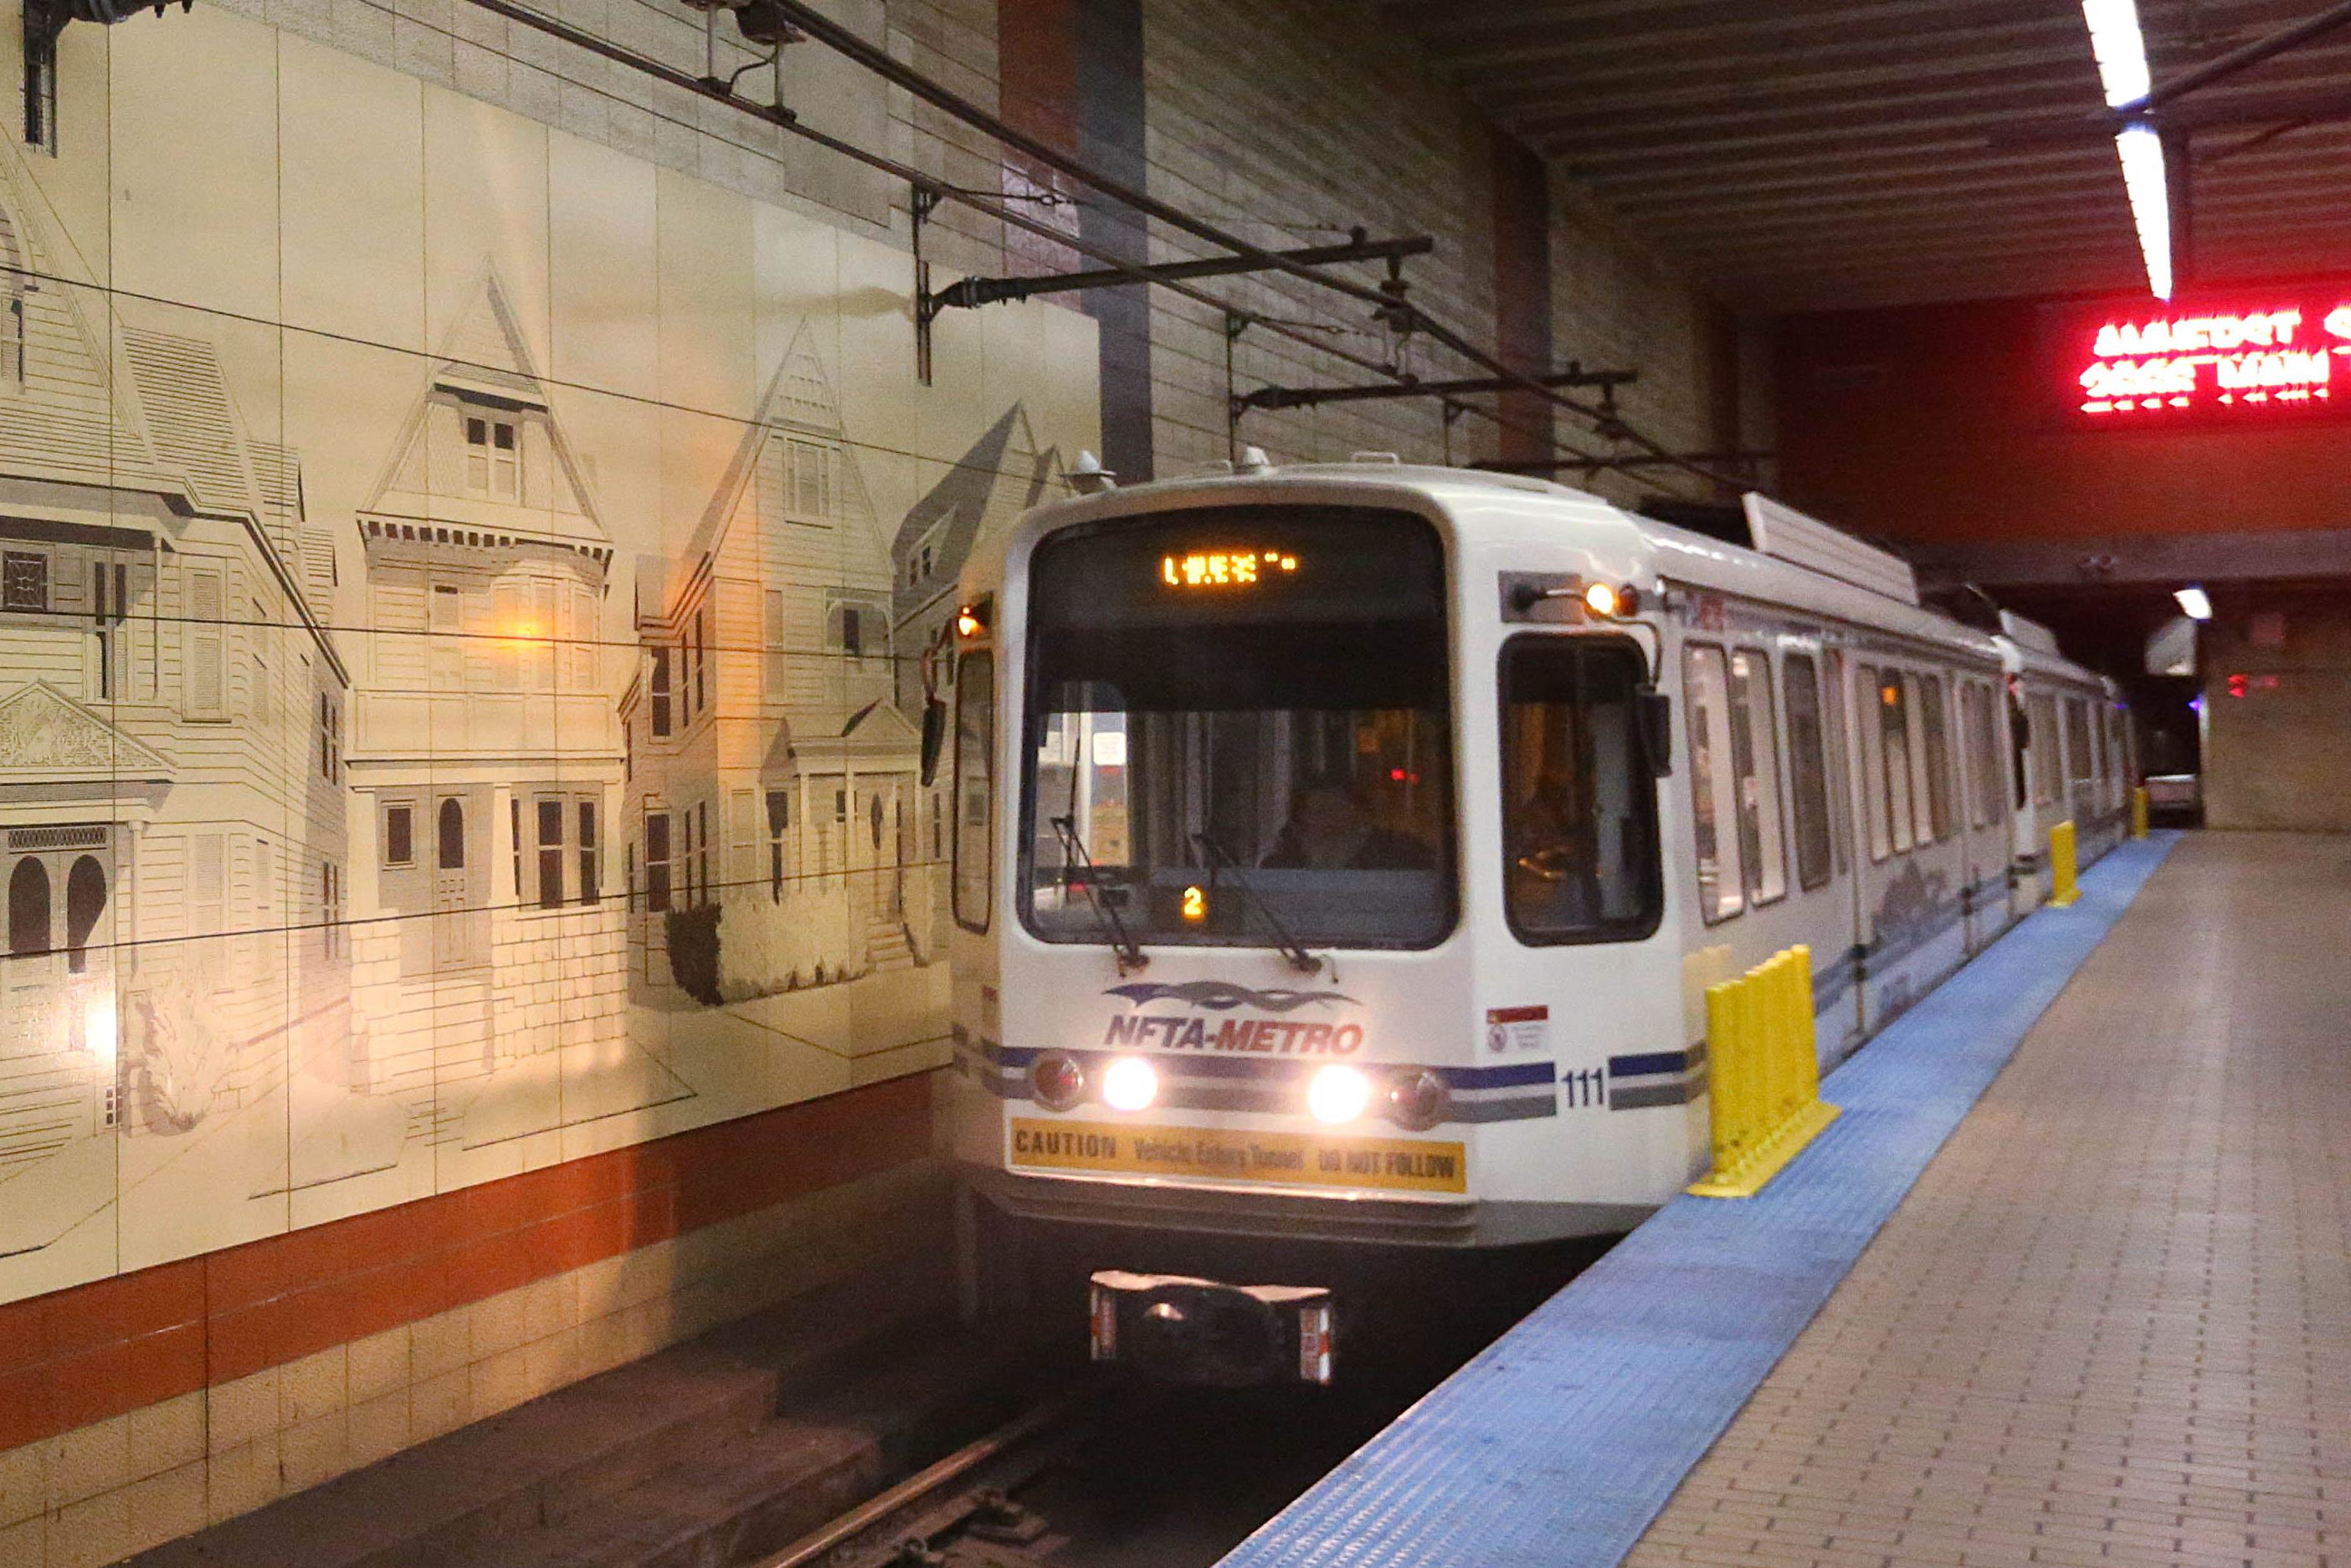 A proposed Metro Rail extension would mean a 30-minute trip from downtown Buffalo to Amherst. (Sharon Cantillon/Buffalo News)